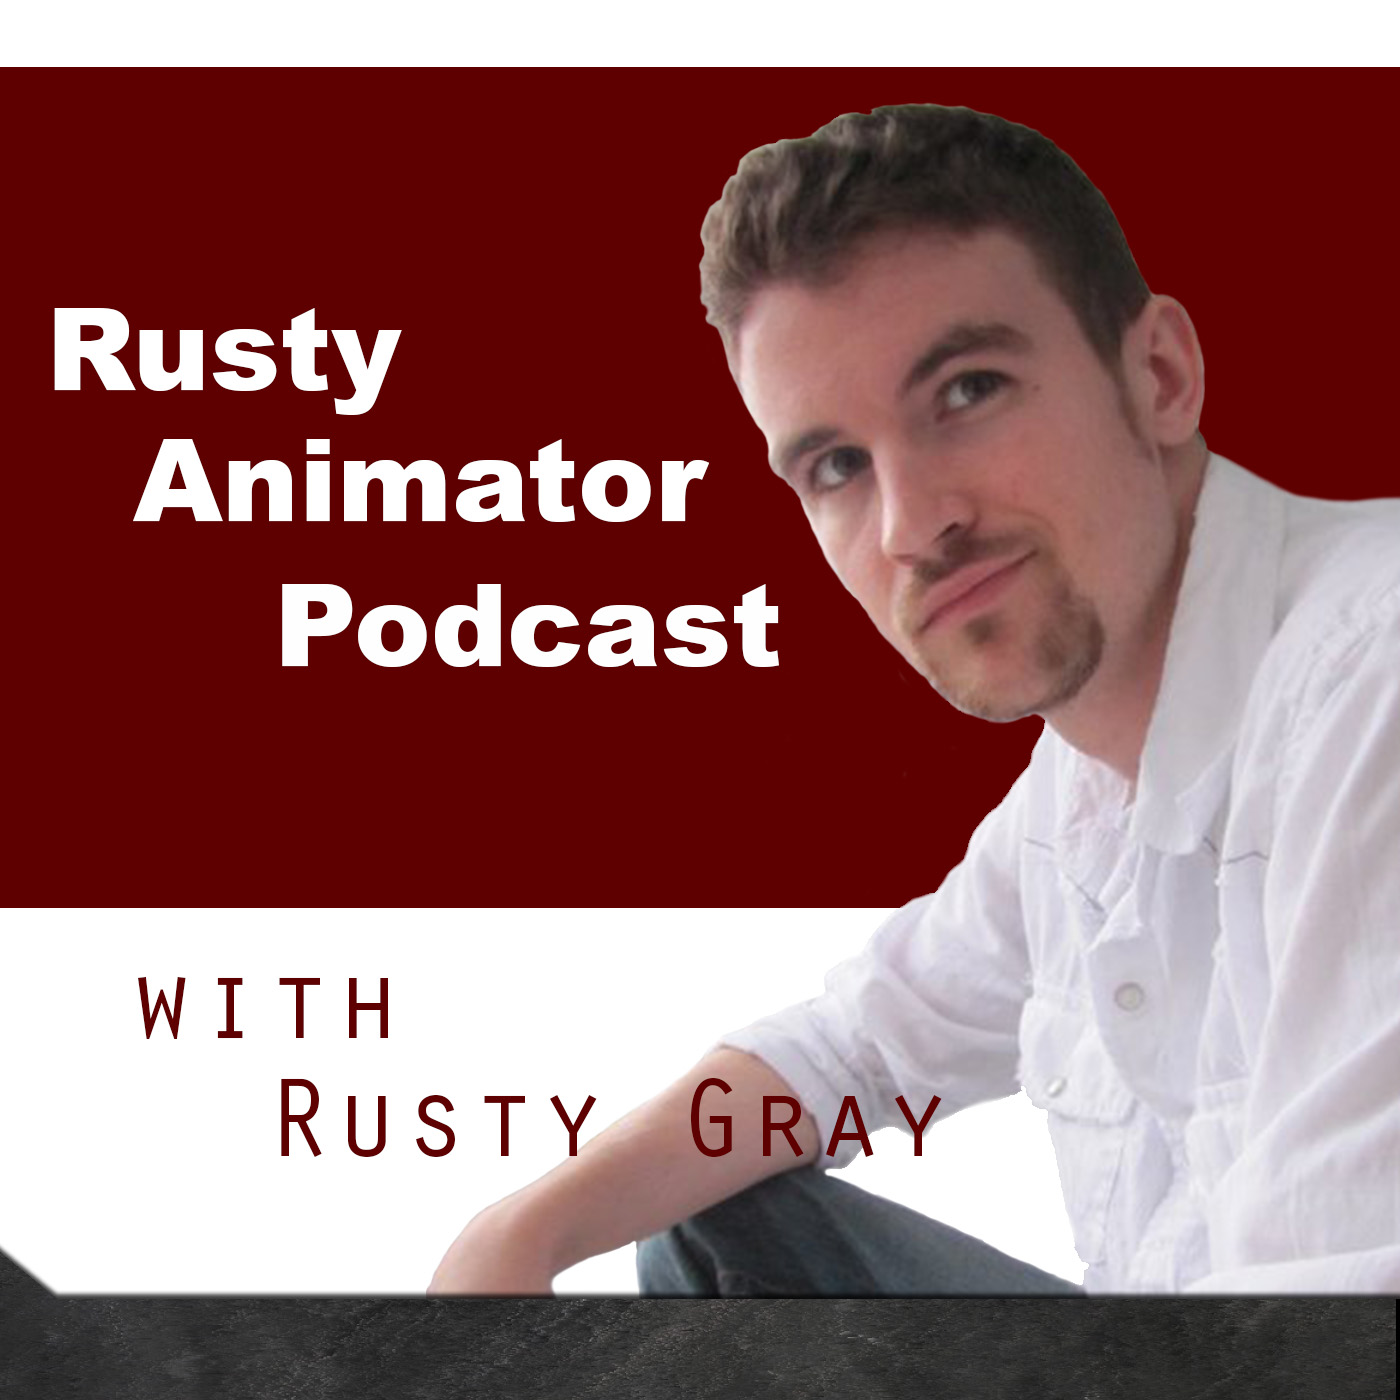 The Rusty Animator Podcast: Animation| Animators| Art | Rusty Gray